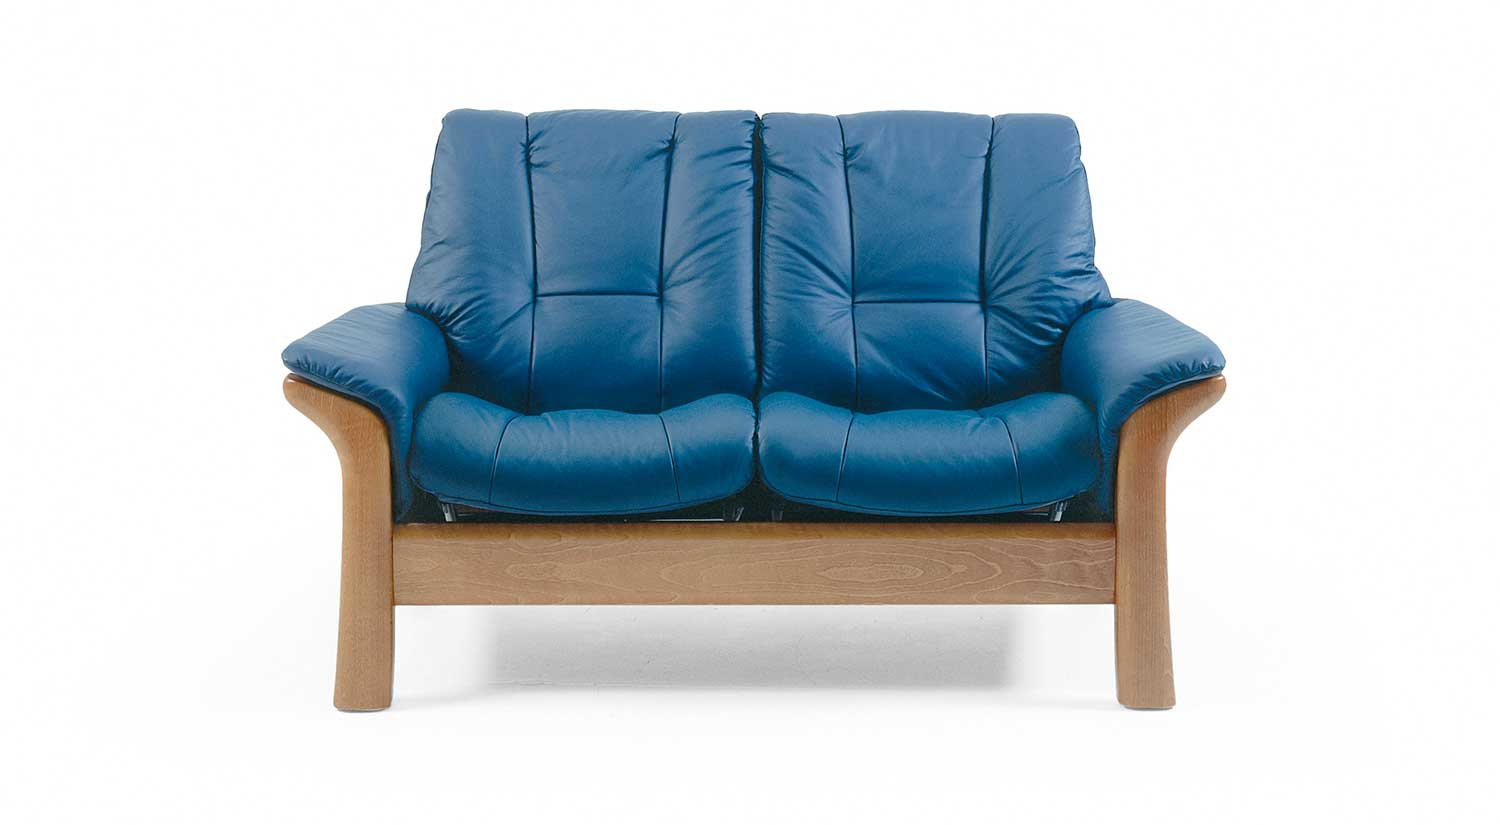 Stressless Sofa And Chairs Circle Furniture Windsor Stressless Loveseat Ekornes